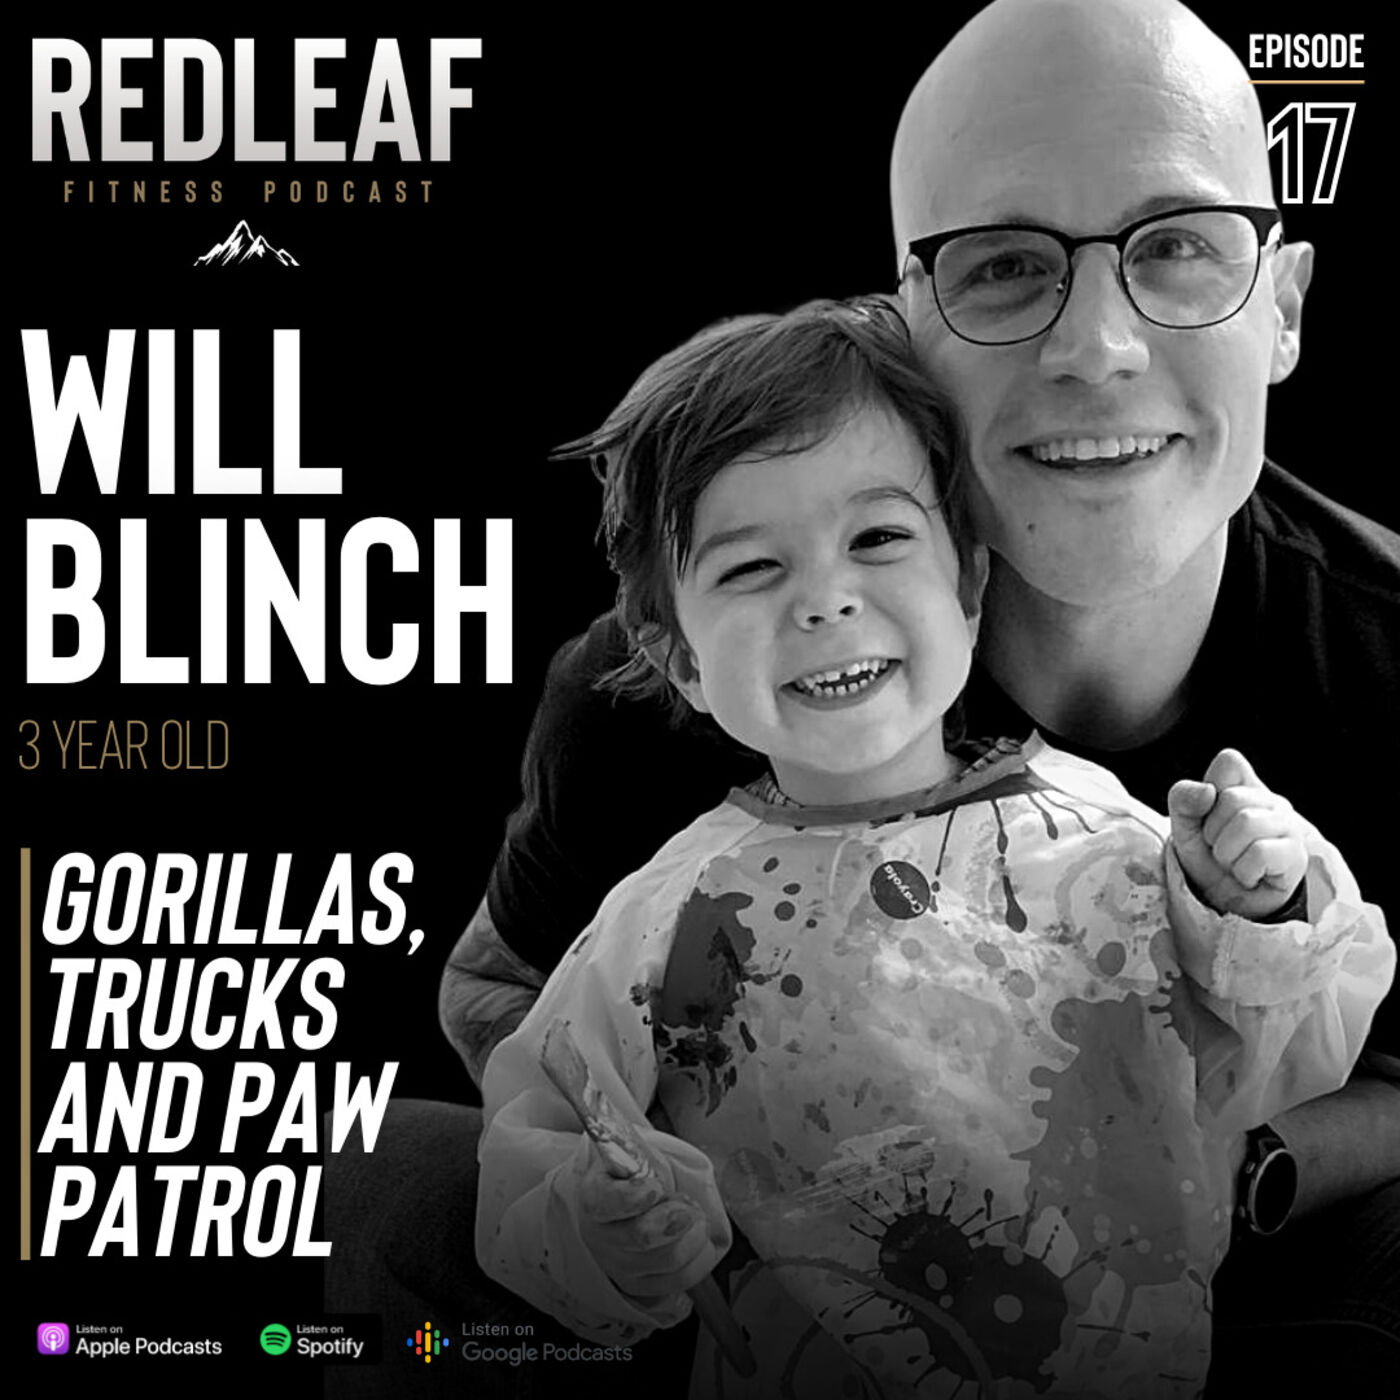 Ep.17 | William Blinch on Gorillas, Exercise and Paw patrol